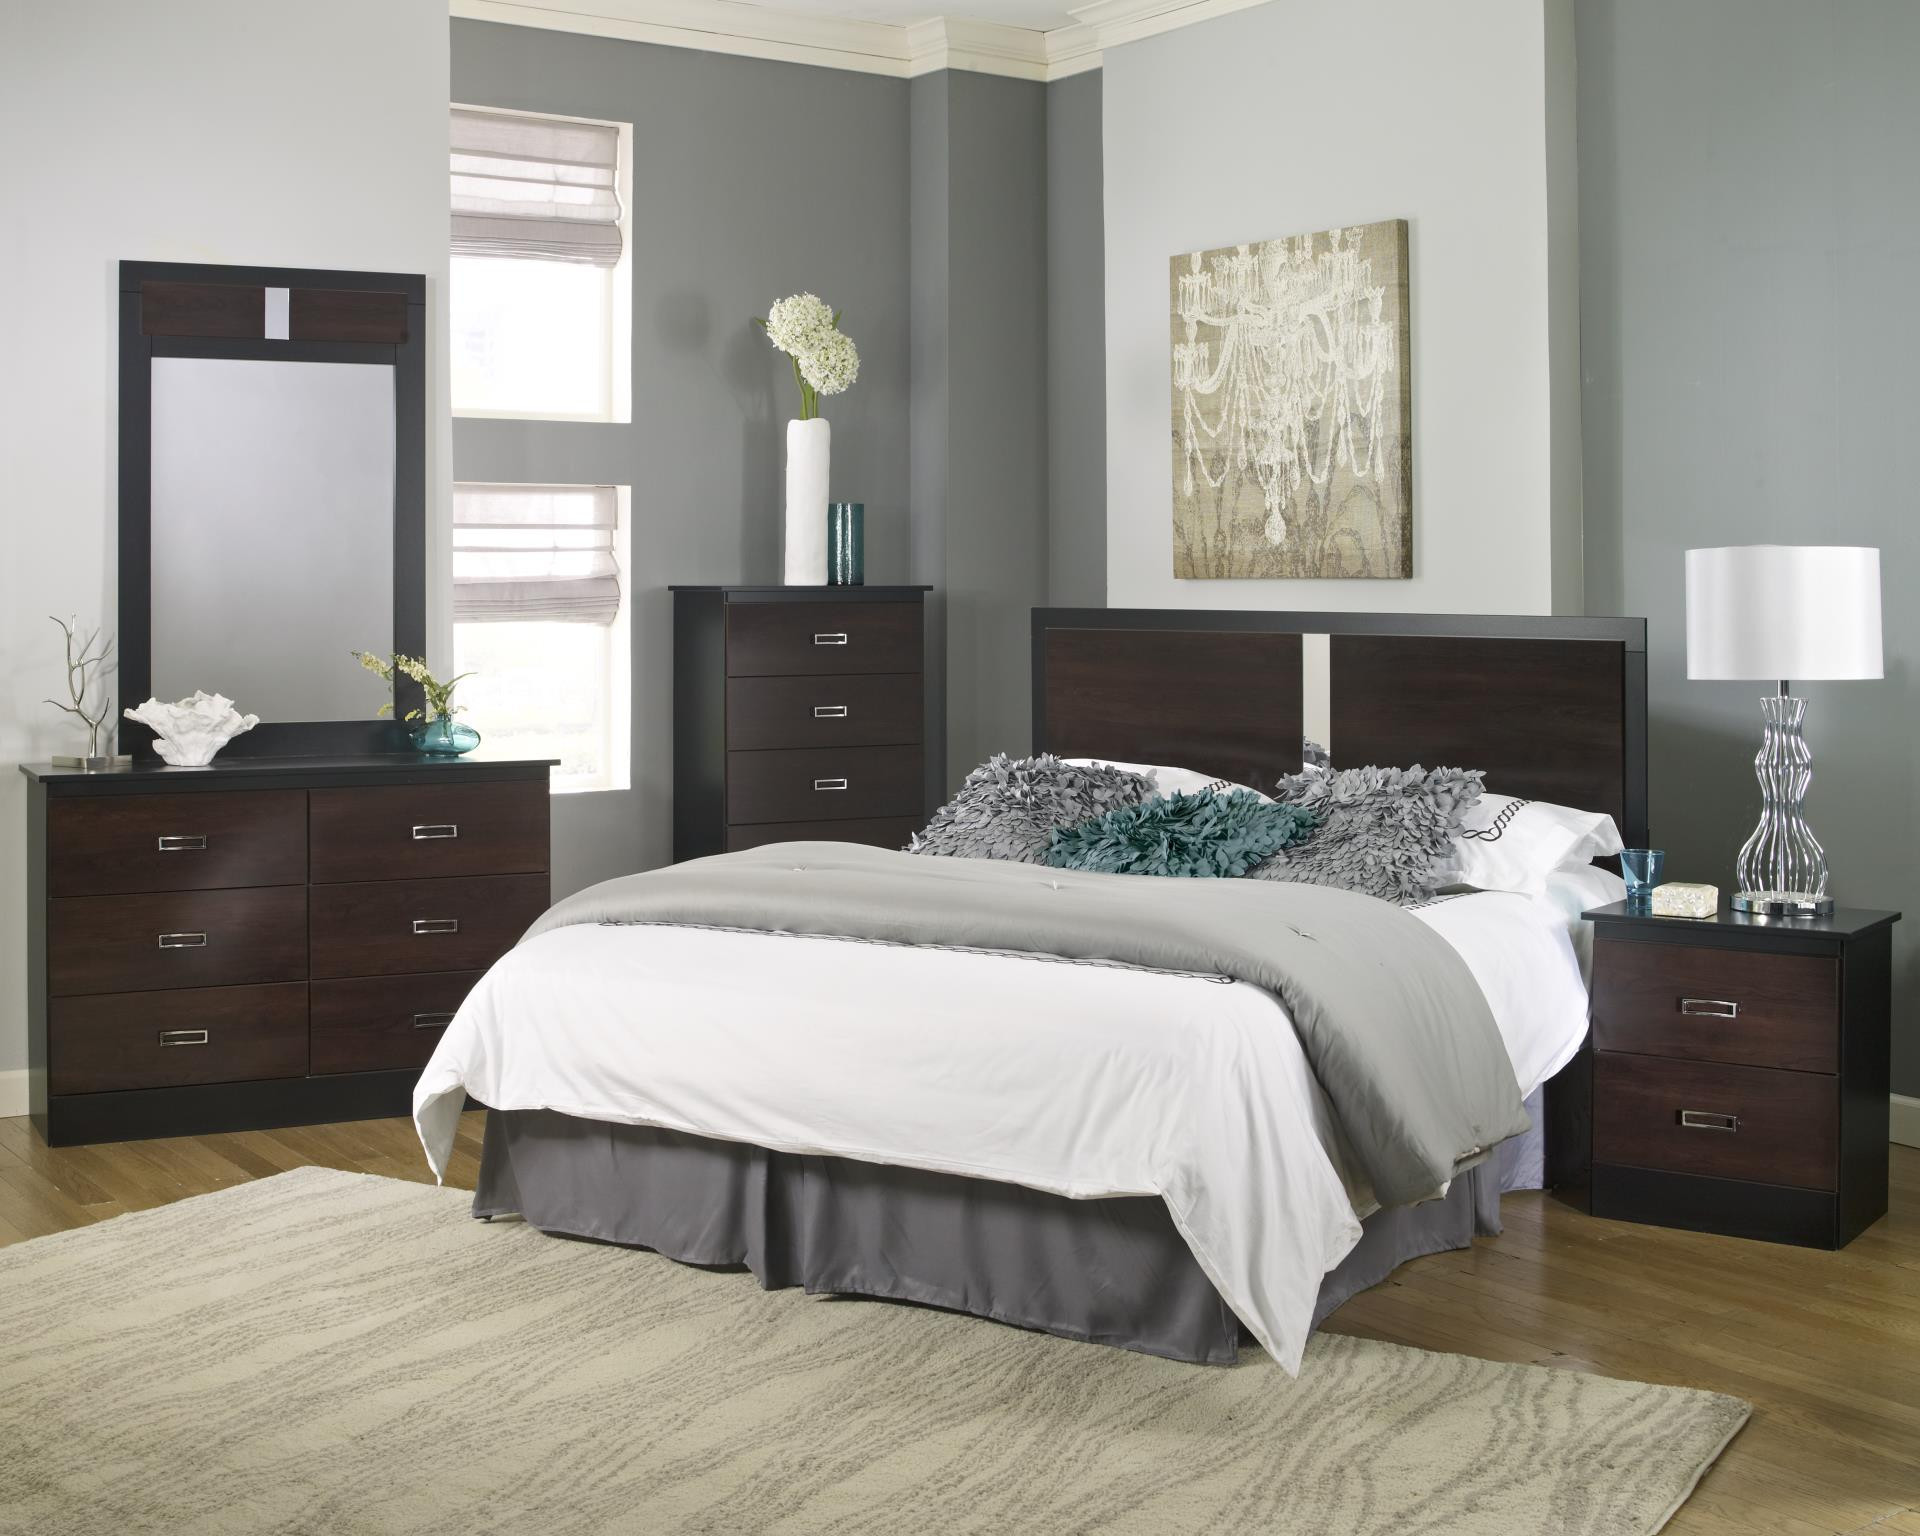 Best ideas about Discount Bedroom Furniture . Save or Pin Discount Adult Bedroom Set Family Discount Furniture Now.